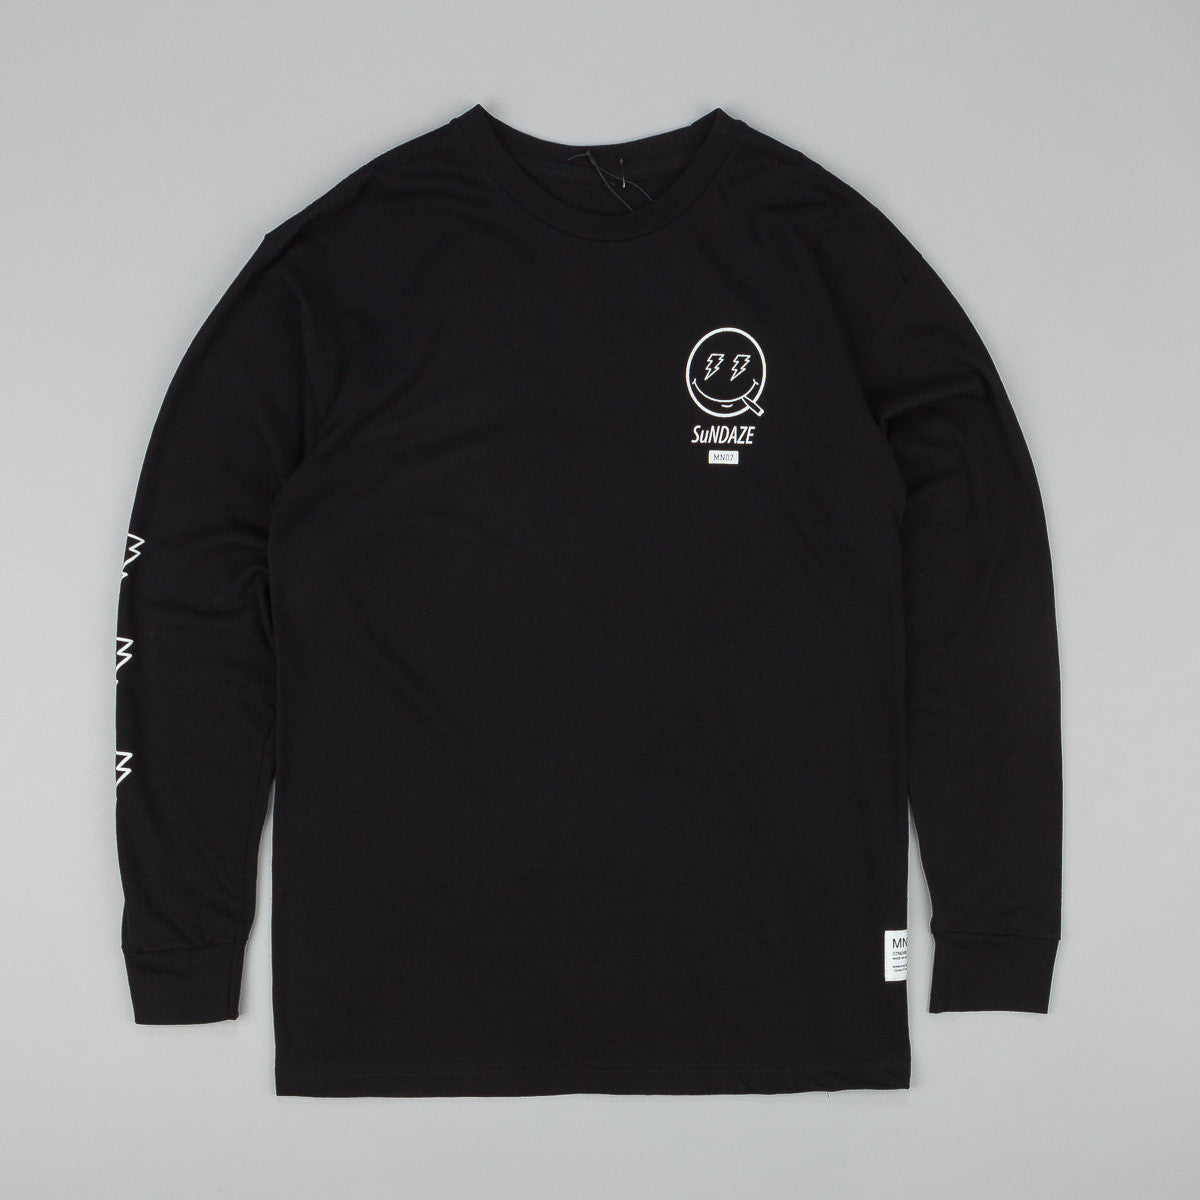 MN07 Sundaze Long Sleeve T-Shirt